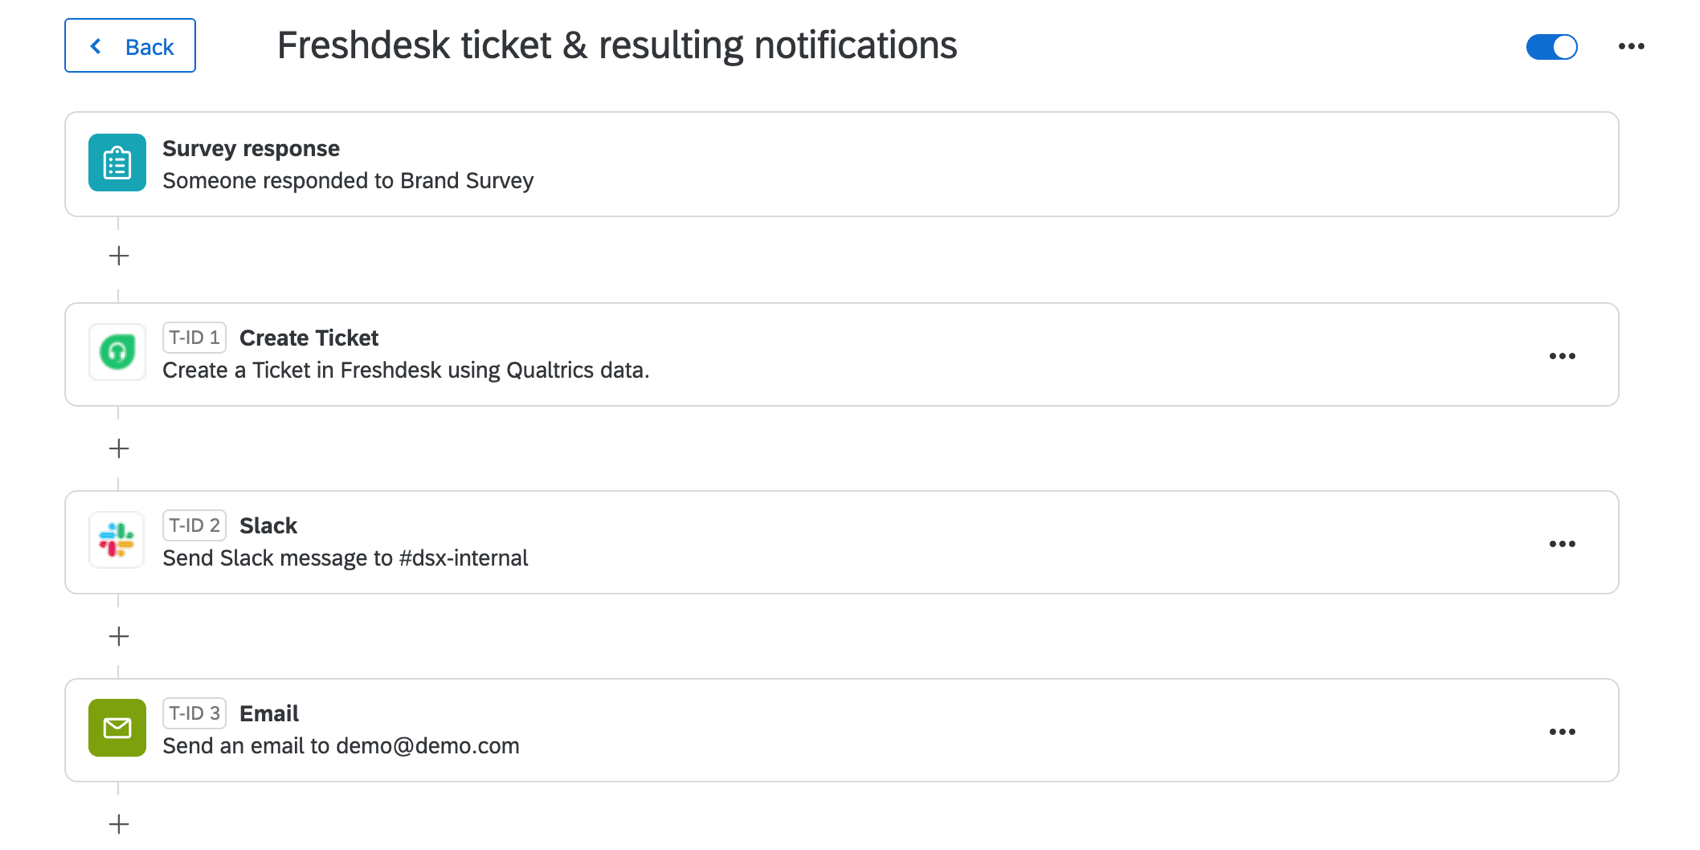 A picture of an action with a freshdesk, slack, and email task